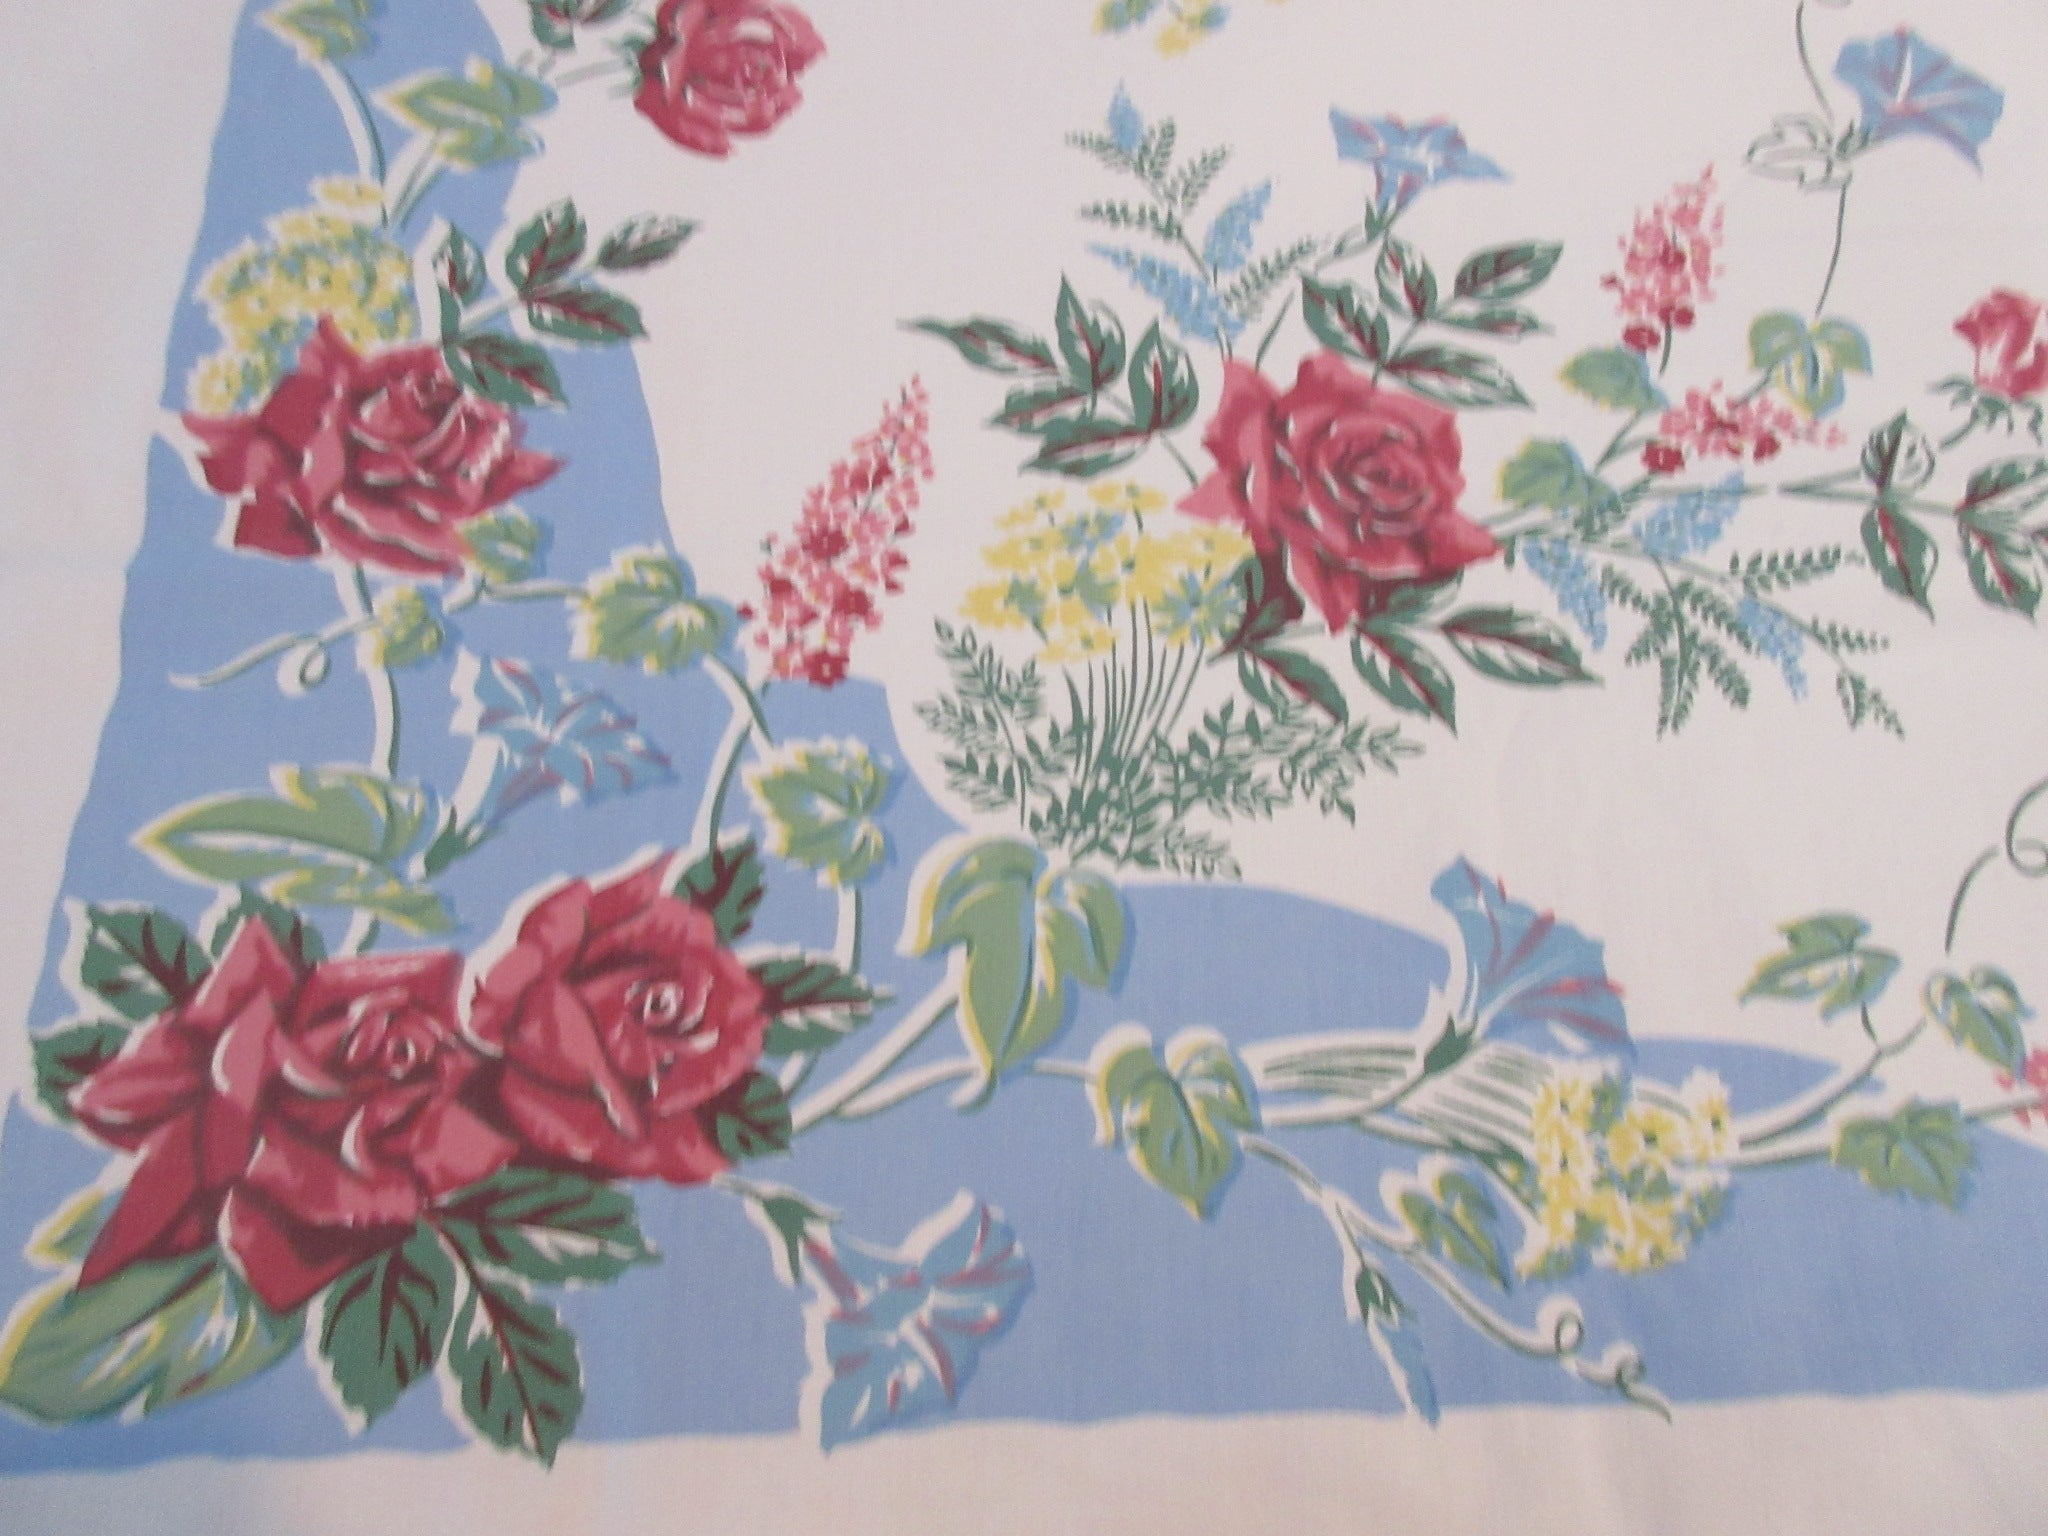 Roses on French Blue Colorway! Floral Vintage Printed Tablecloth (51 X 45)